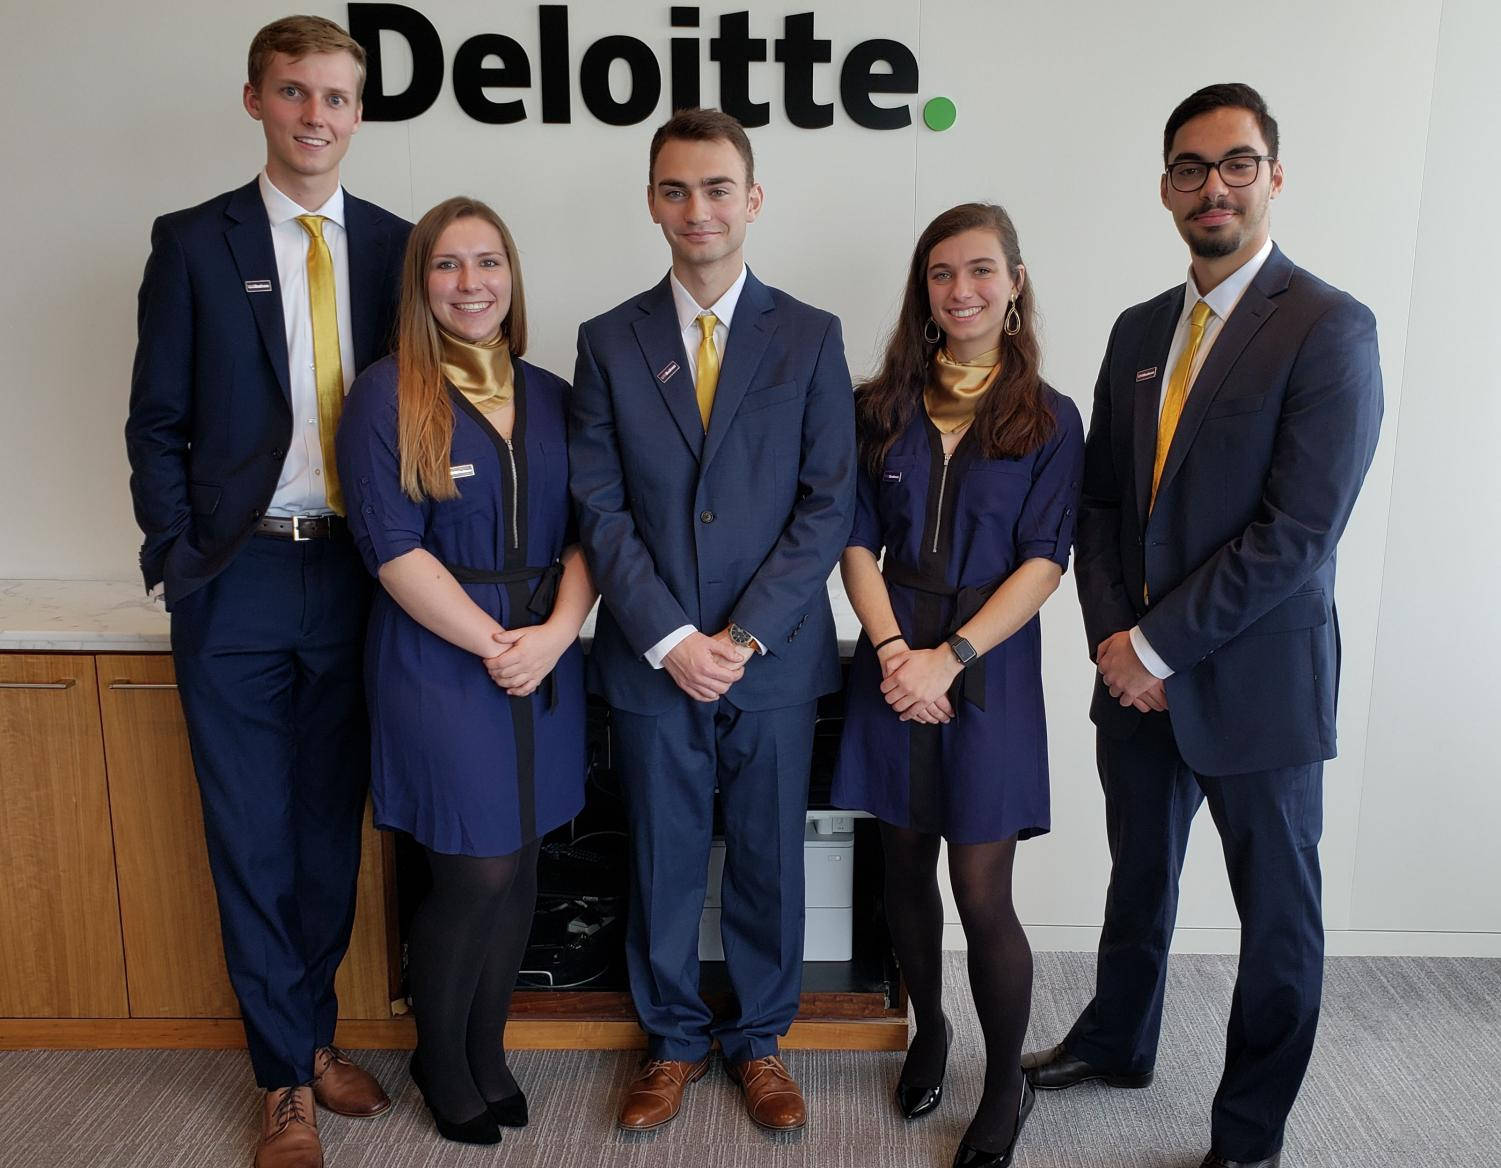 UNIBusiness students Carson Ehrenberg (from left), Cassidy Pearson, Nathan Funke, Jacqueline Hicks and Al Faisal Yasin will compete at the national level of the Deloitte National FanTAXtic Competition in January.